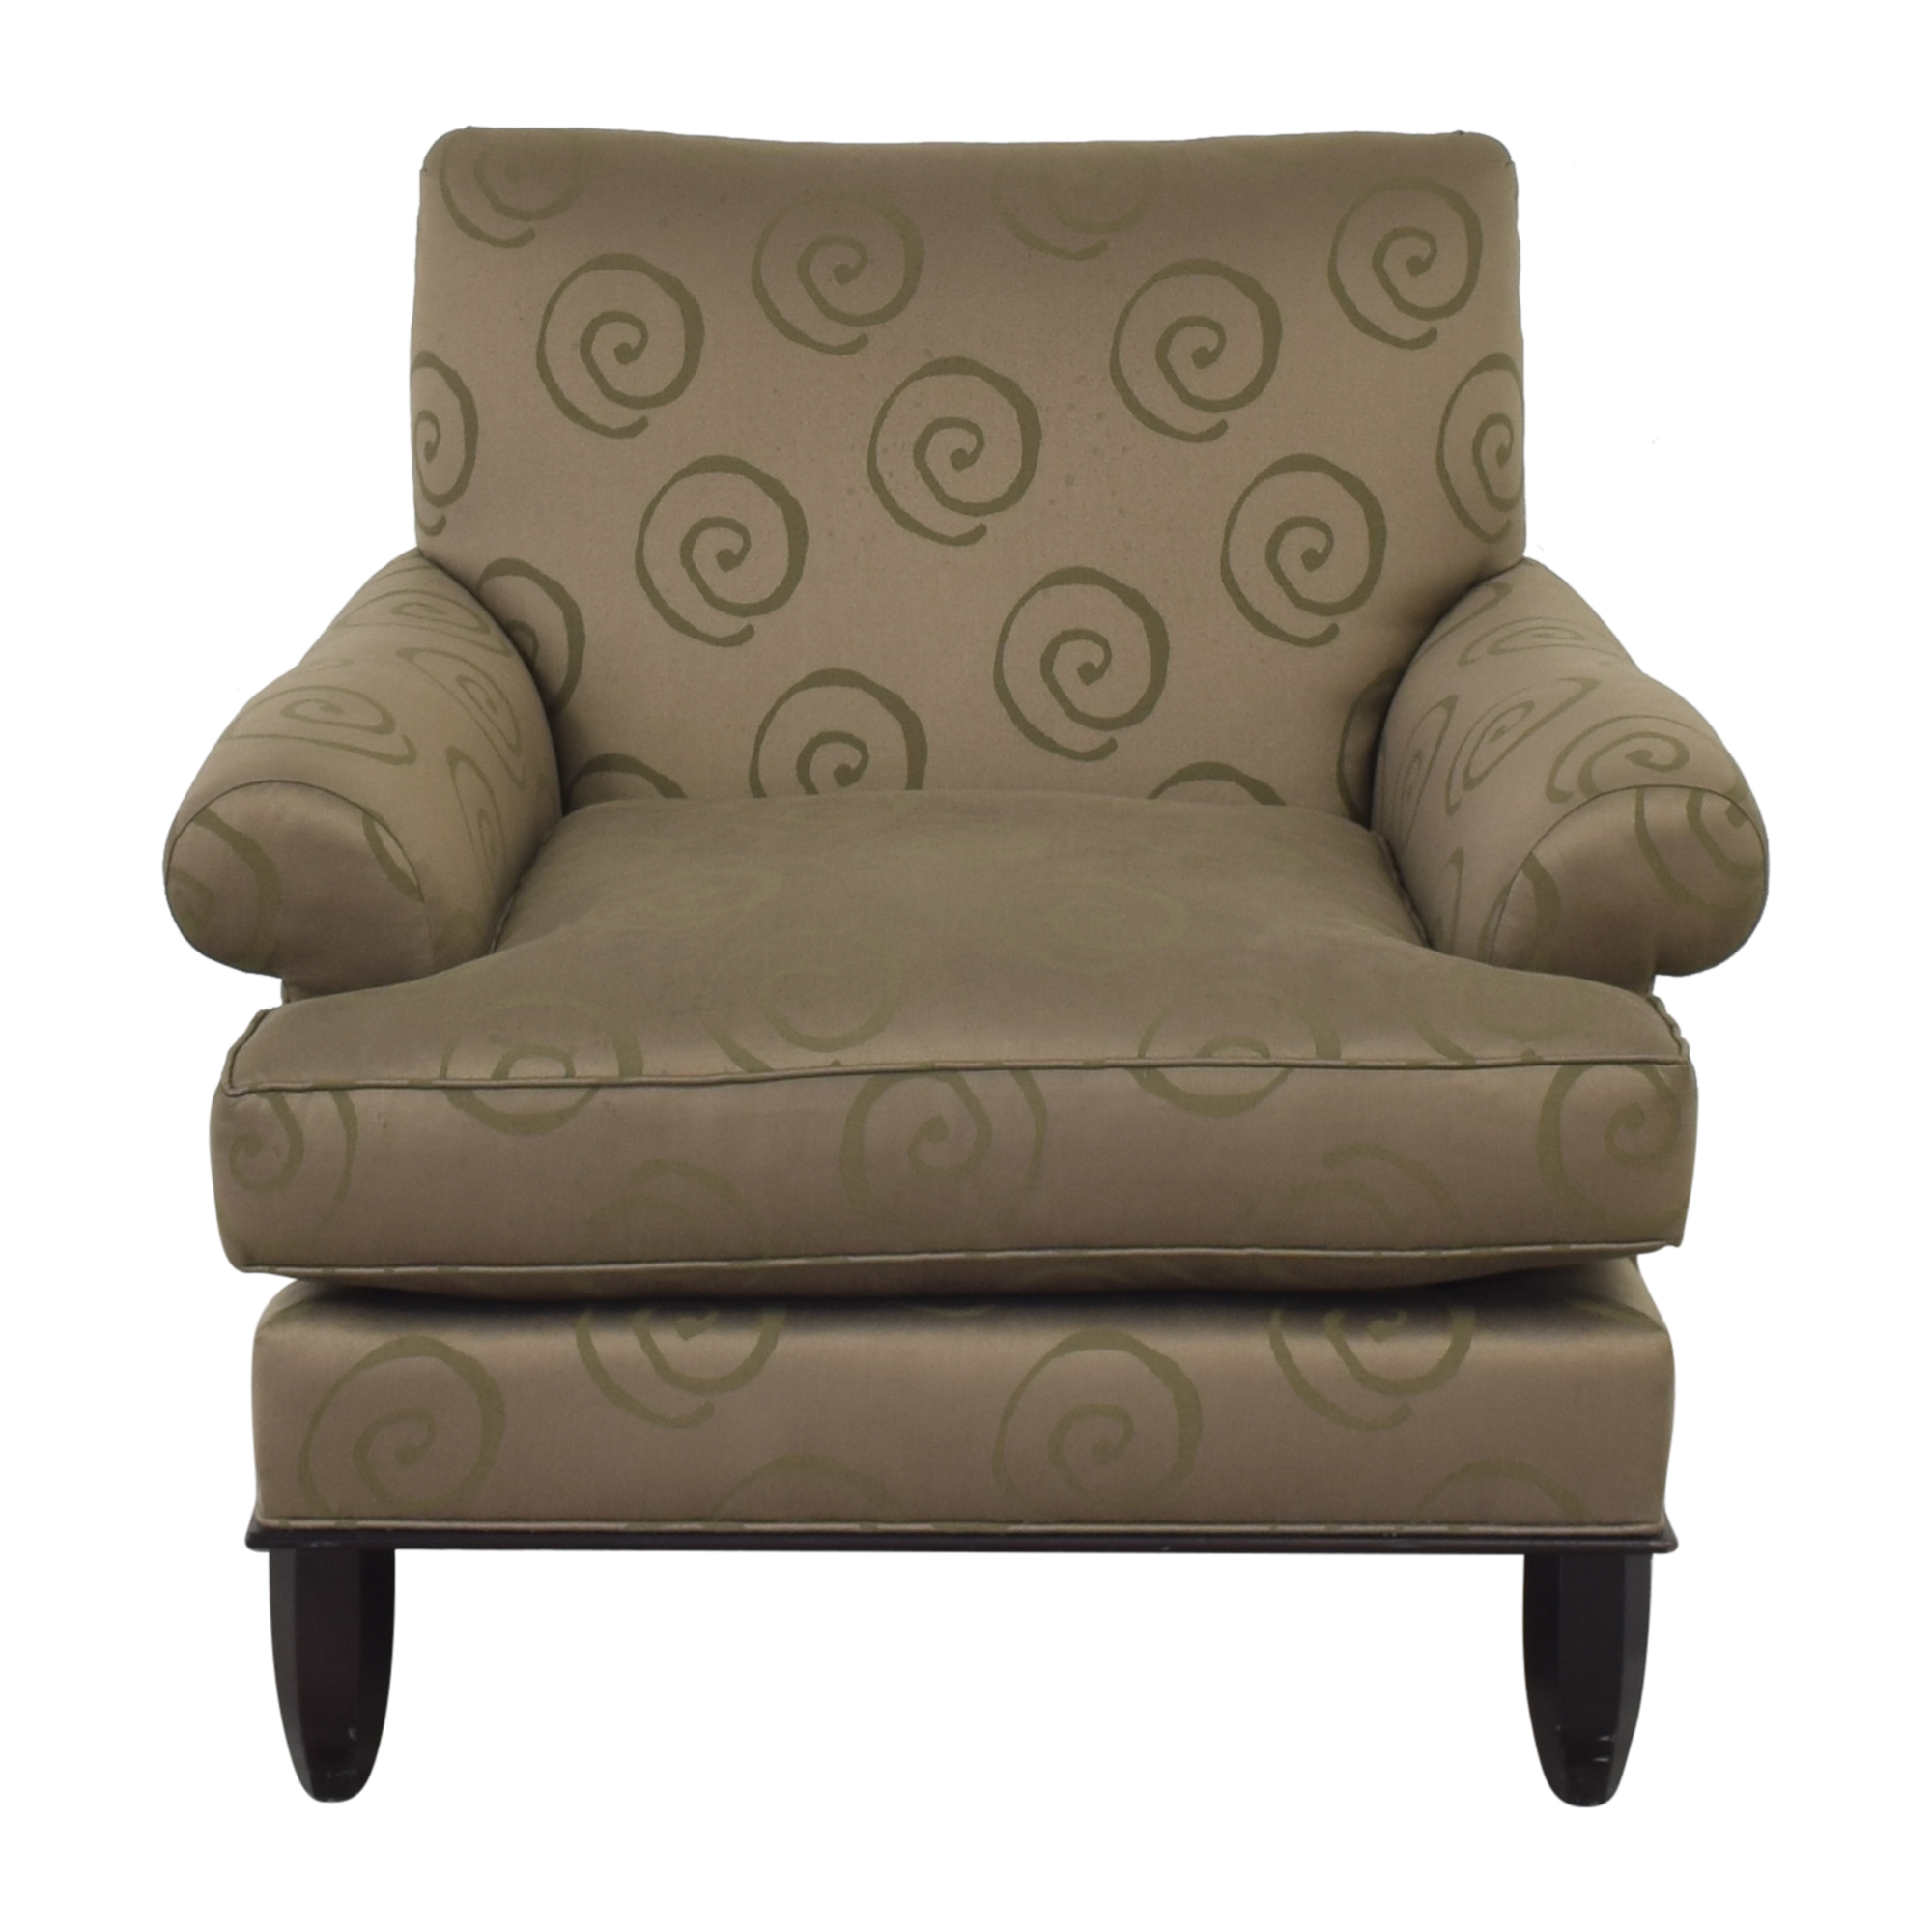 shop Baker Roll Arm Lounge Chair Baker Furniture Chairs